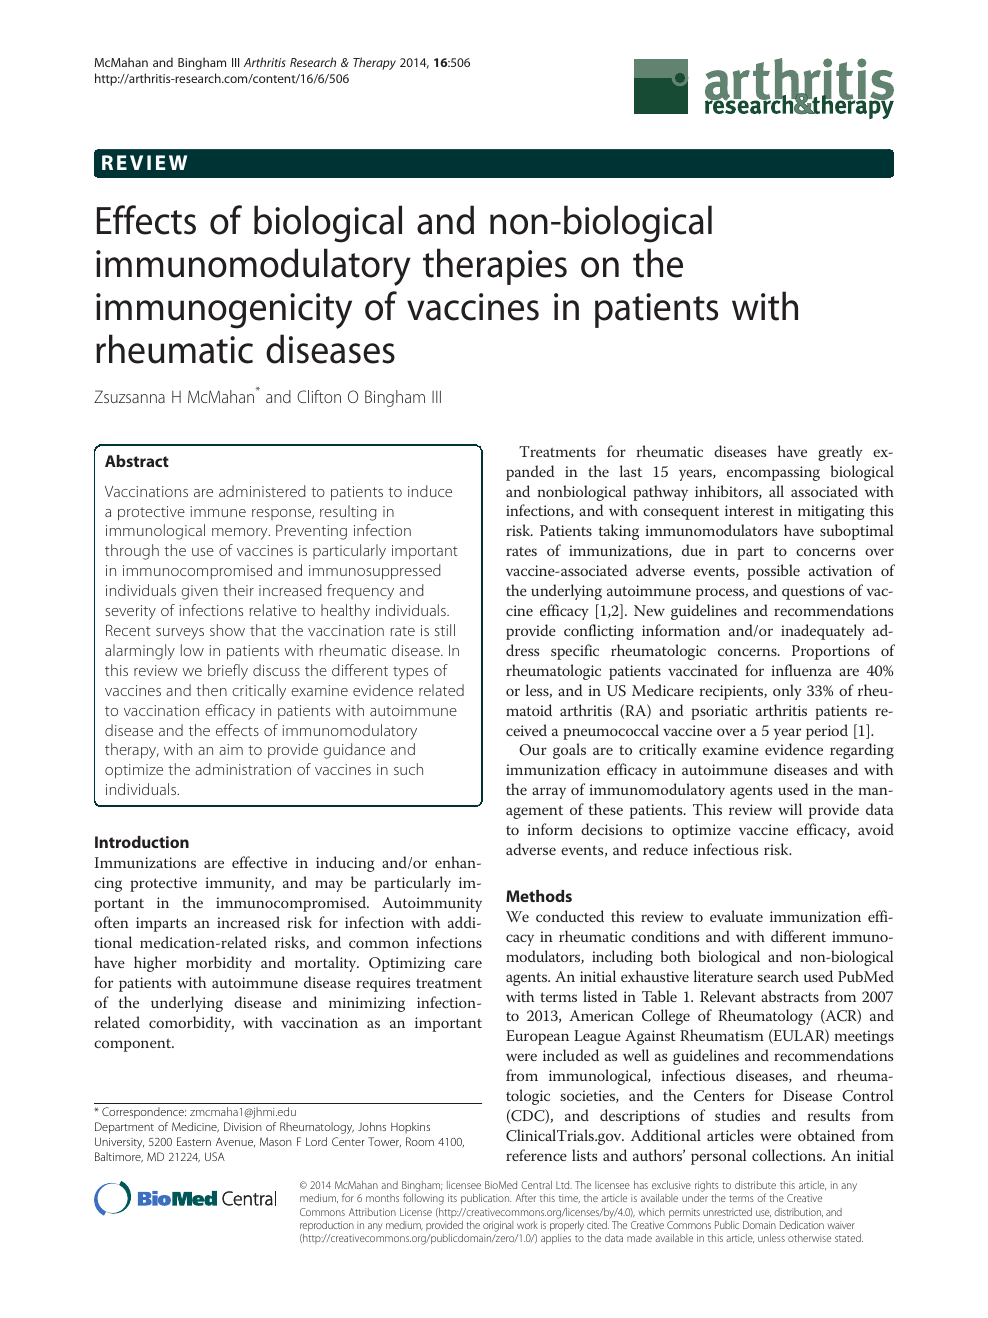 Effects of biological and non-biological immunomodulatory therapies